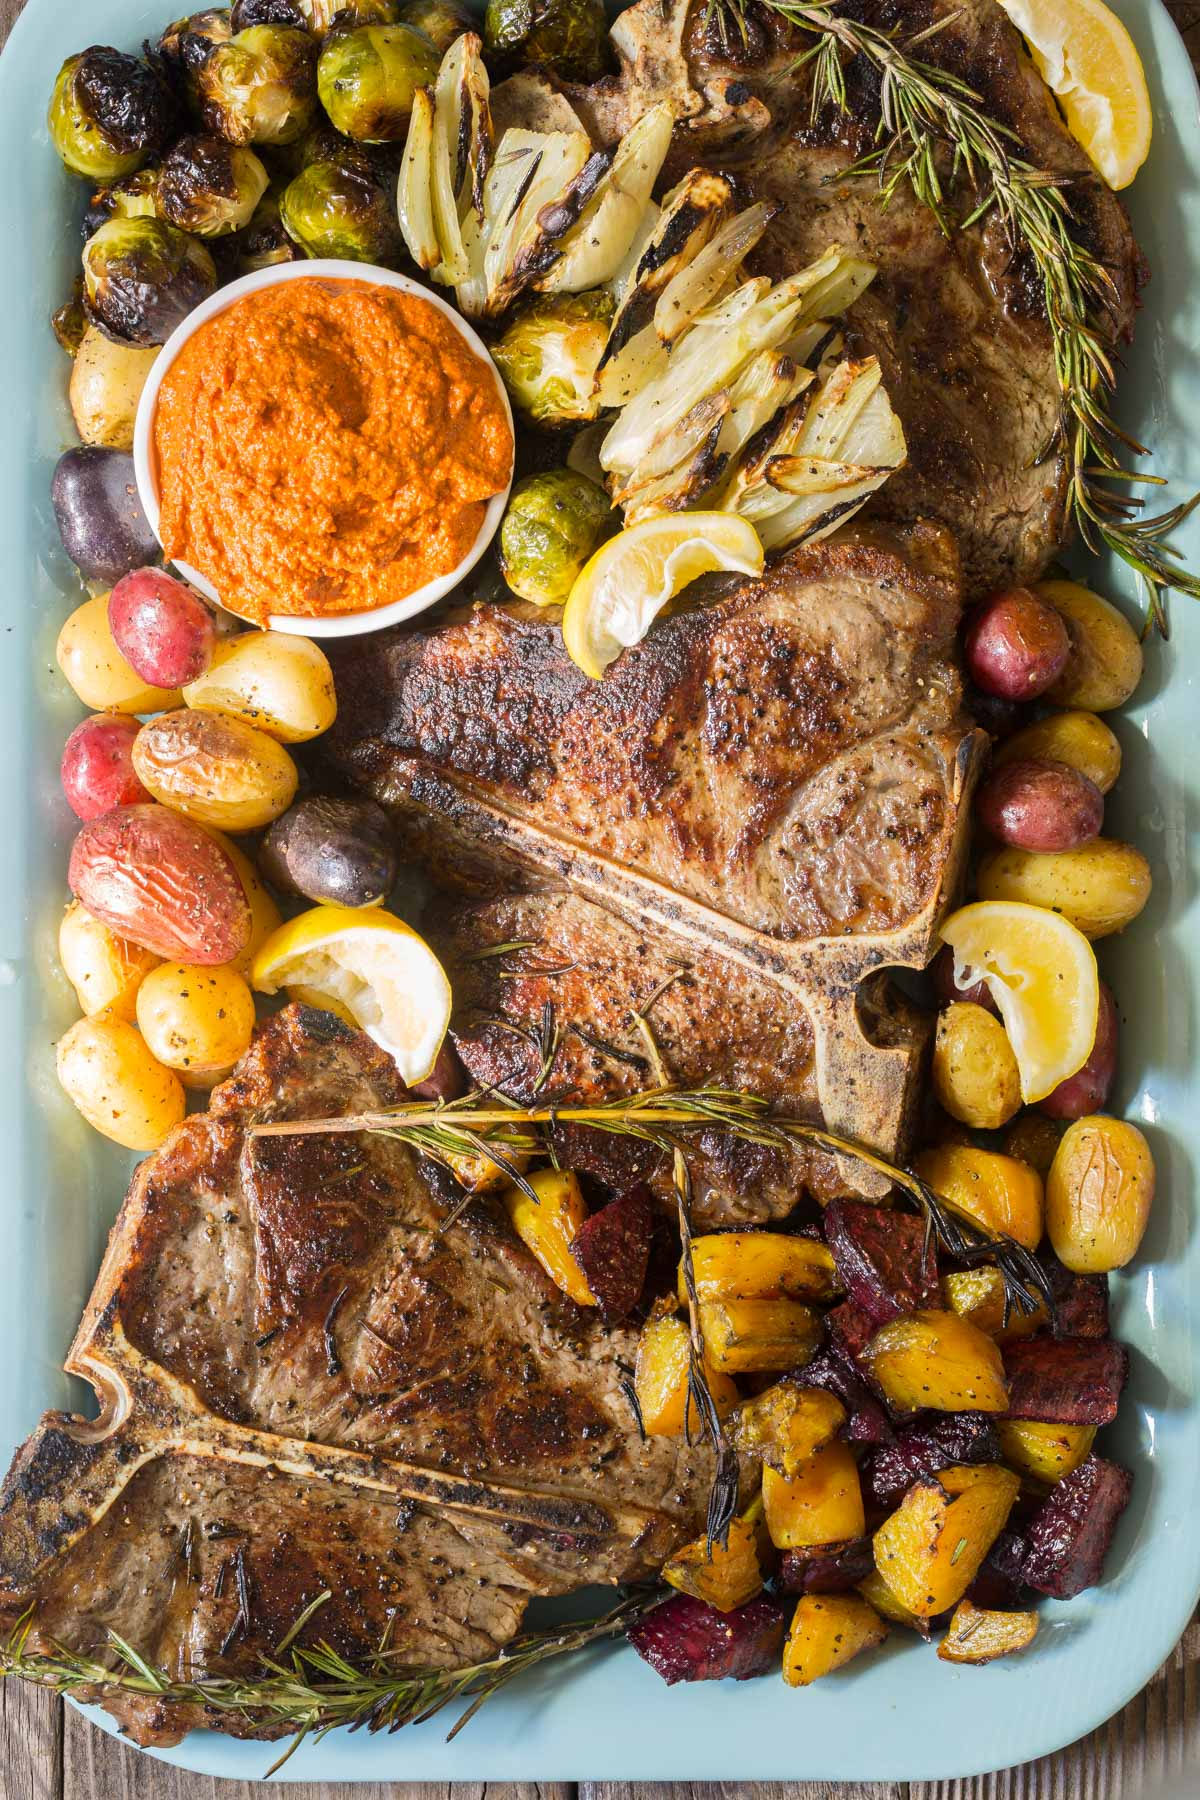 Bistecca alla Fiorentina Recipe (Florentine Steak Platter) with Romesco Sauce #ASpicyPerspective